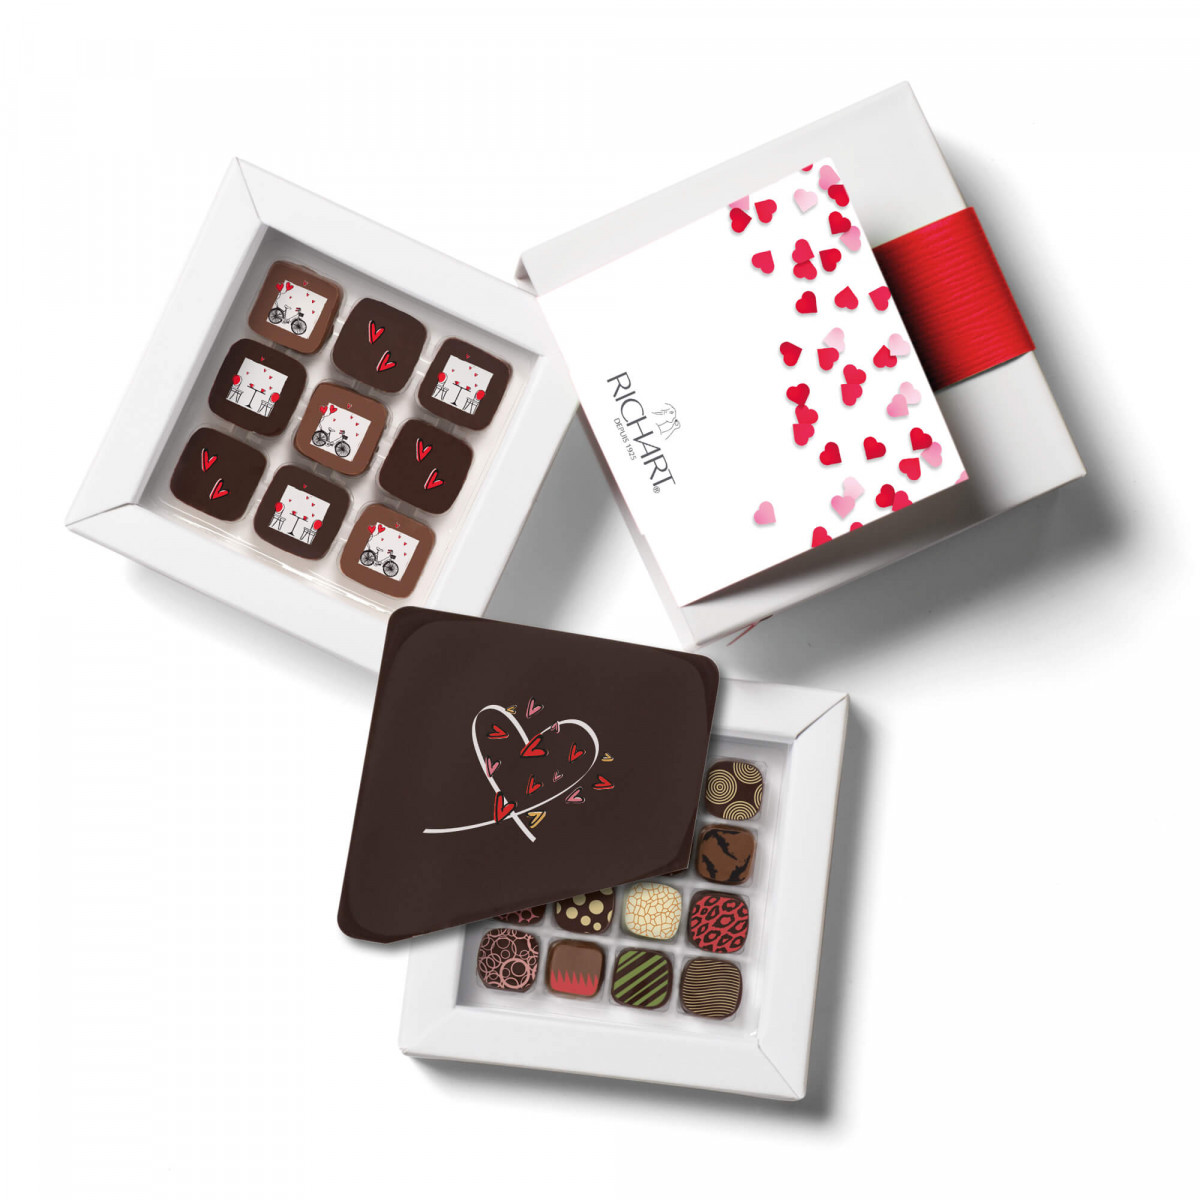 Chocolats RICHART - Coffret Arty : chocolats Saint-Valentin, 12 chocolats Petits Richart et plaque en chocolat